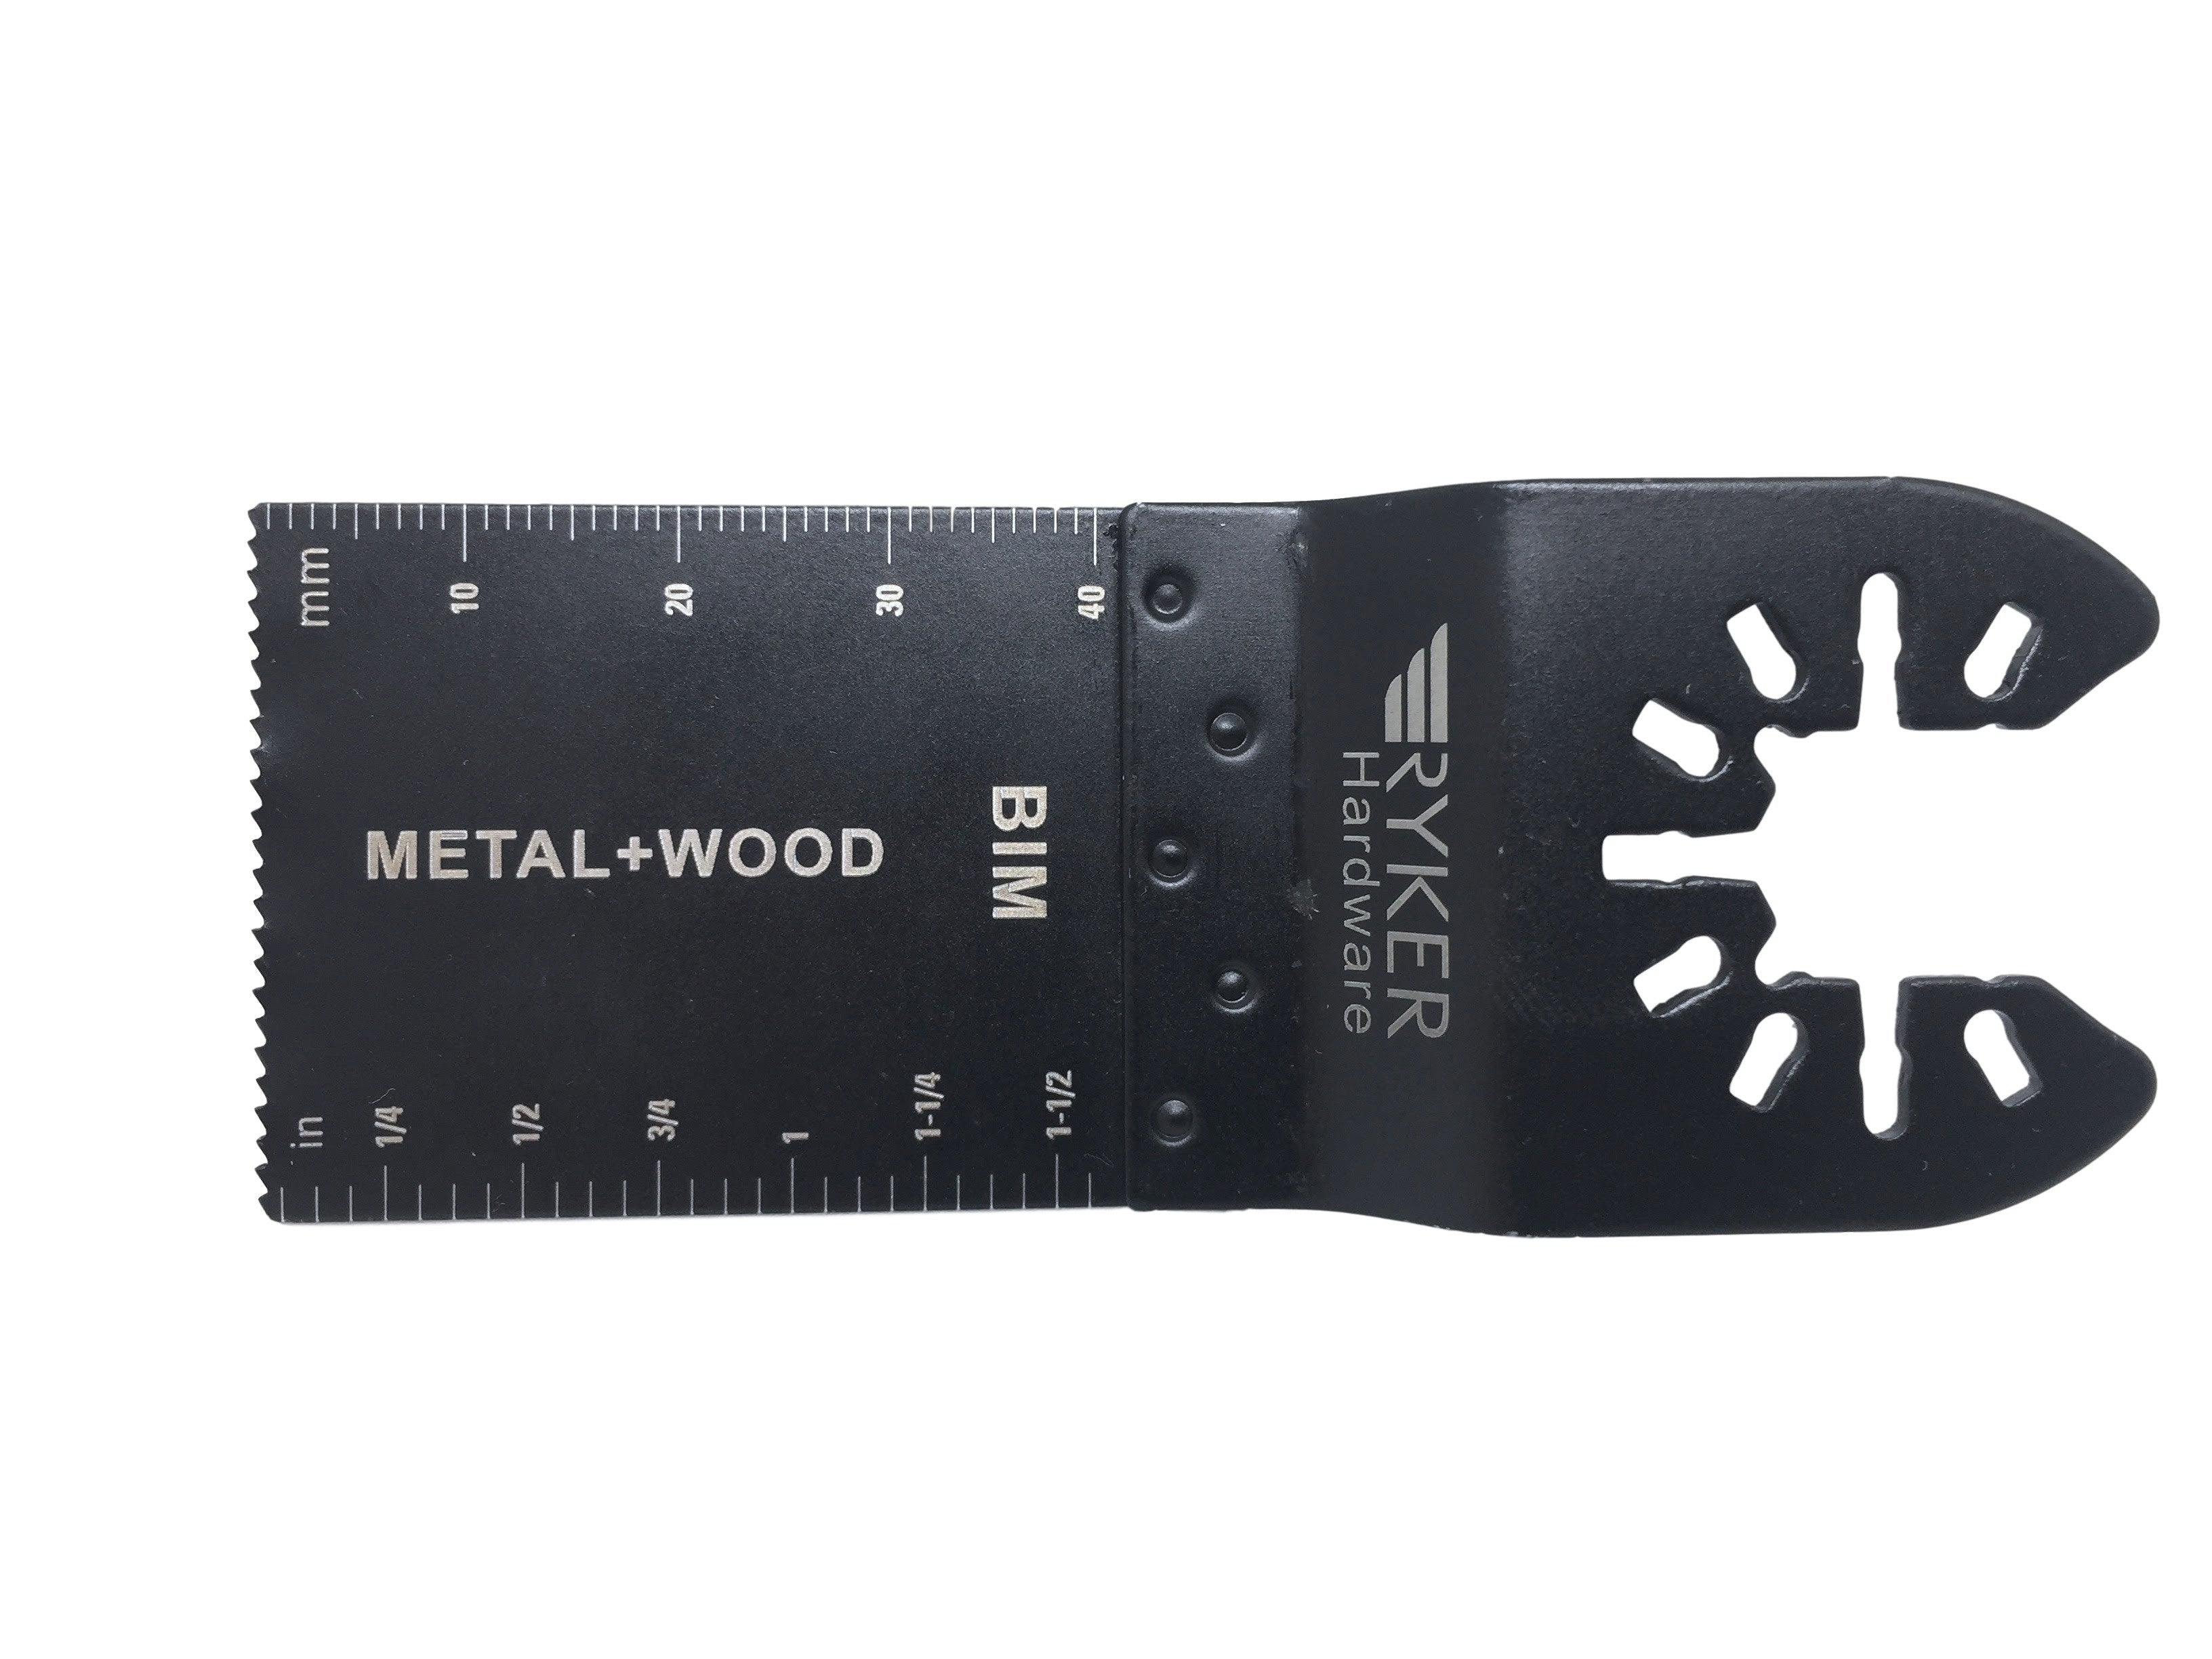 caseypowell - 10 Pack - BiMetal Oscillating Saw Blades - Metal and Wood - Saw Blade - Ryker Hardware